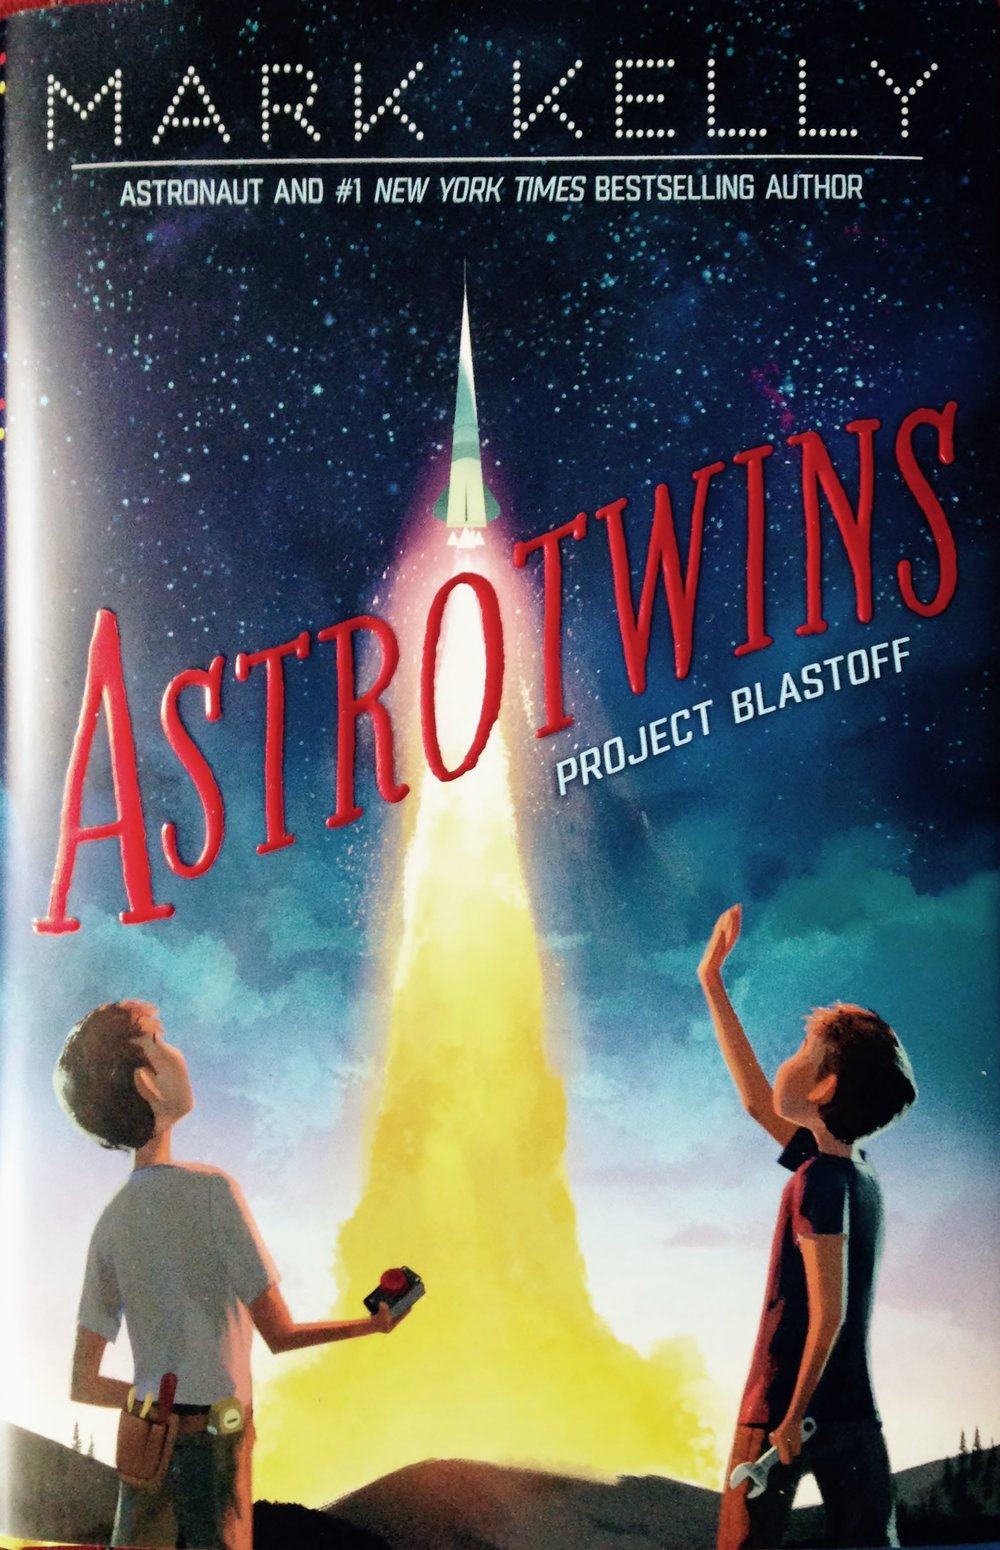 Astrotwins: Project Blastoff by Mark Kelly